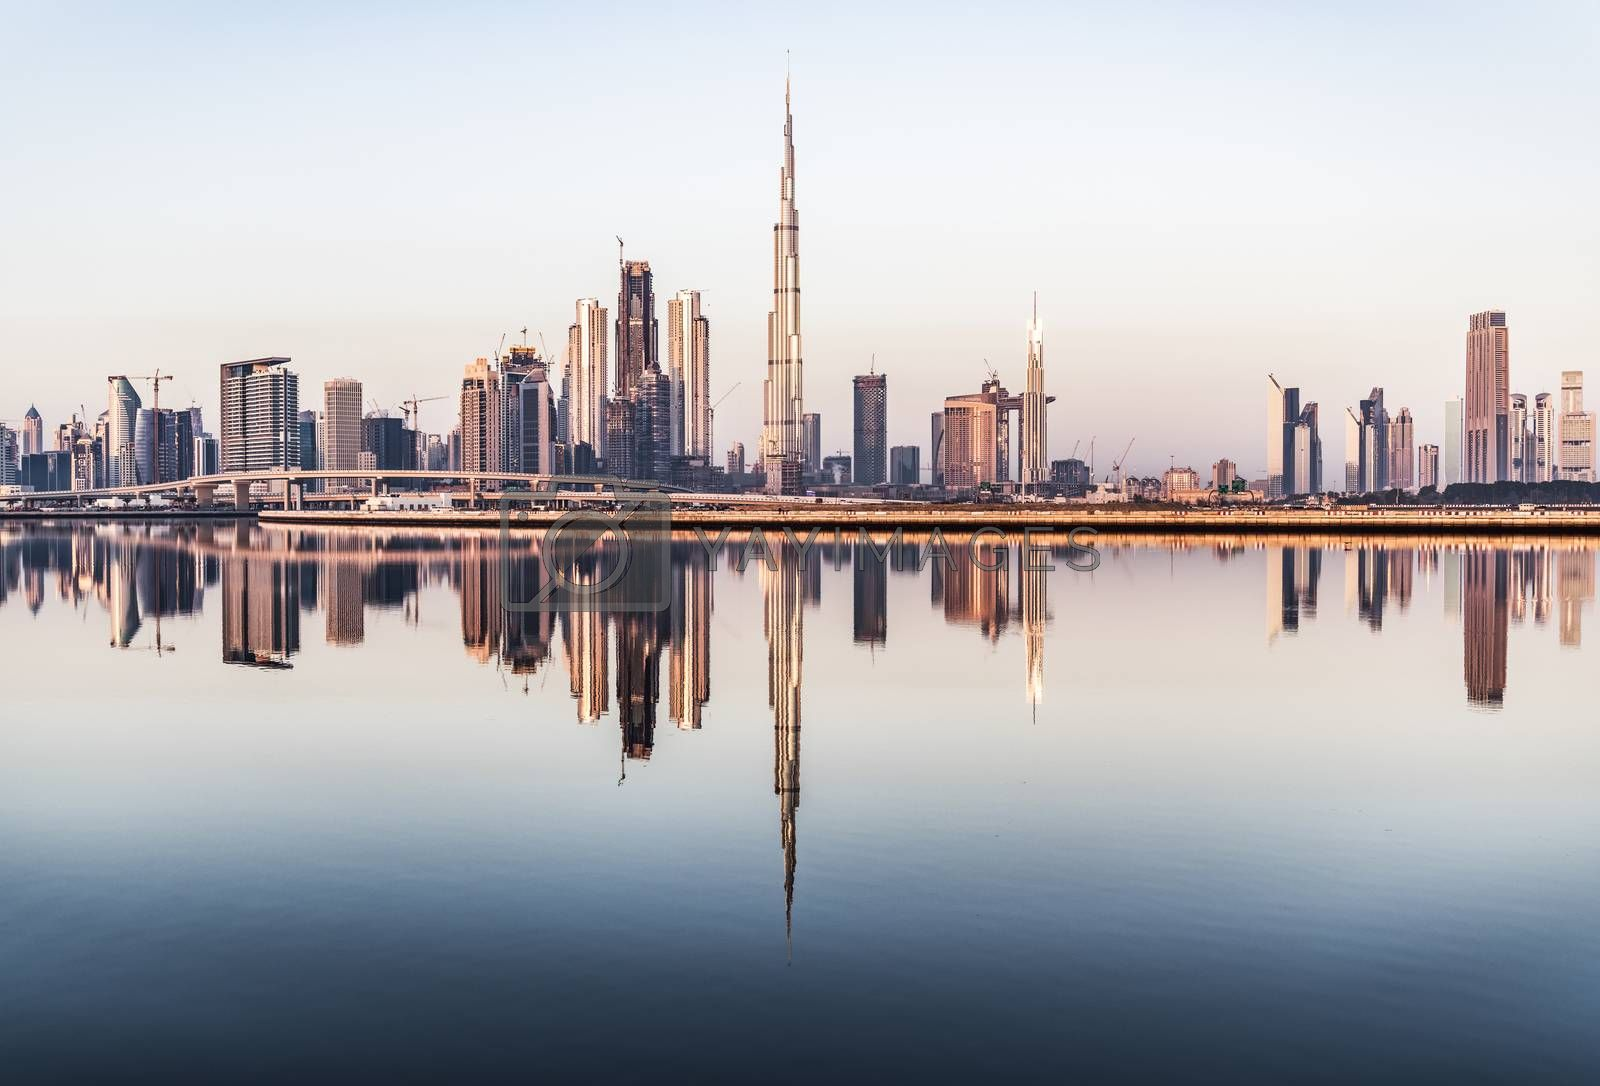 Royalty free image of Clear Sky above Dubai Skyscrapers, UAE - no logo by GABIS